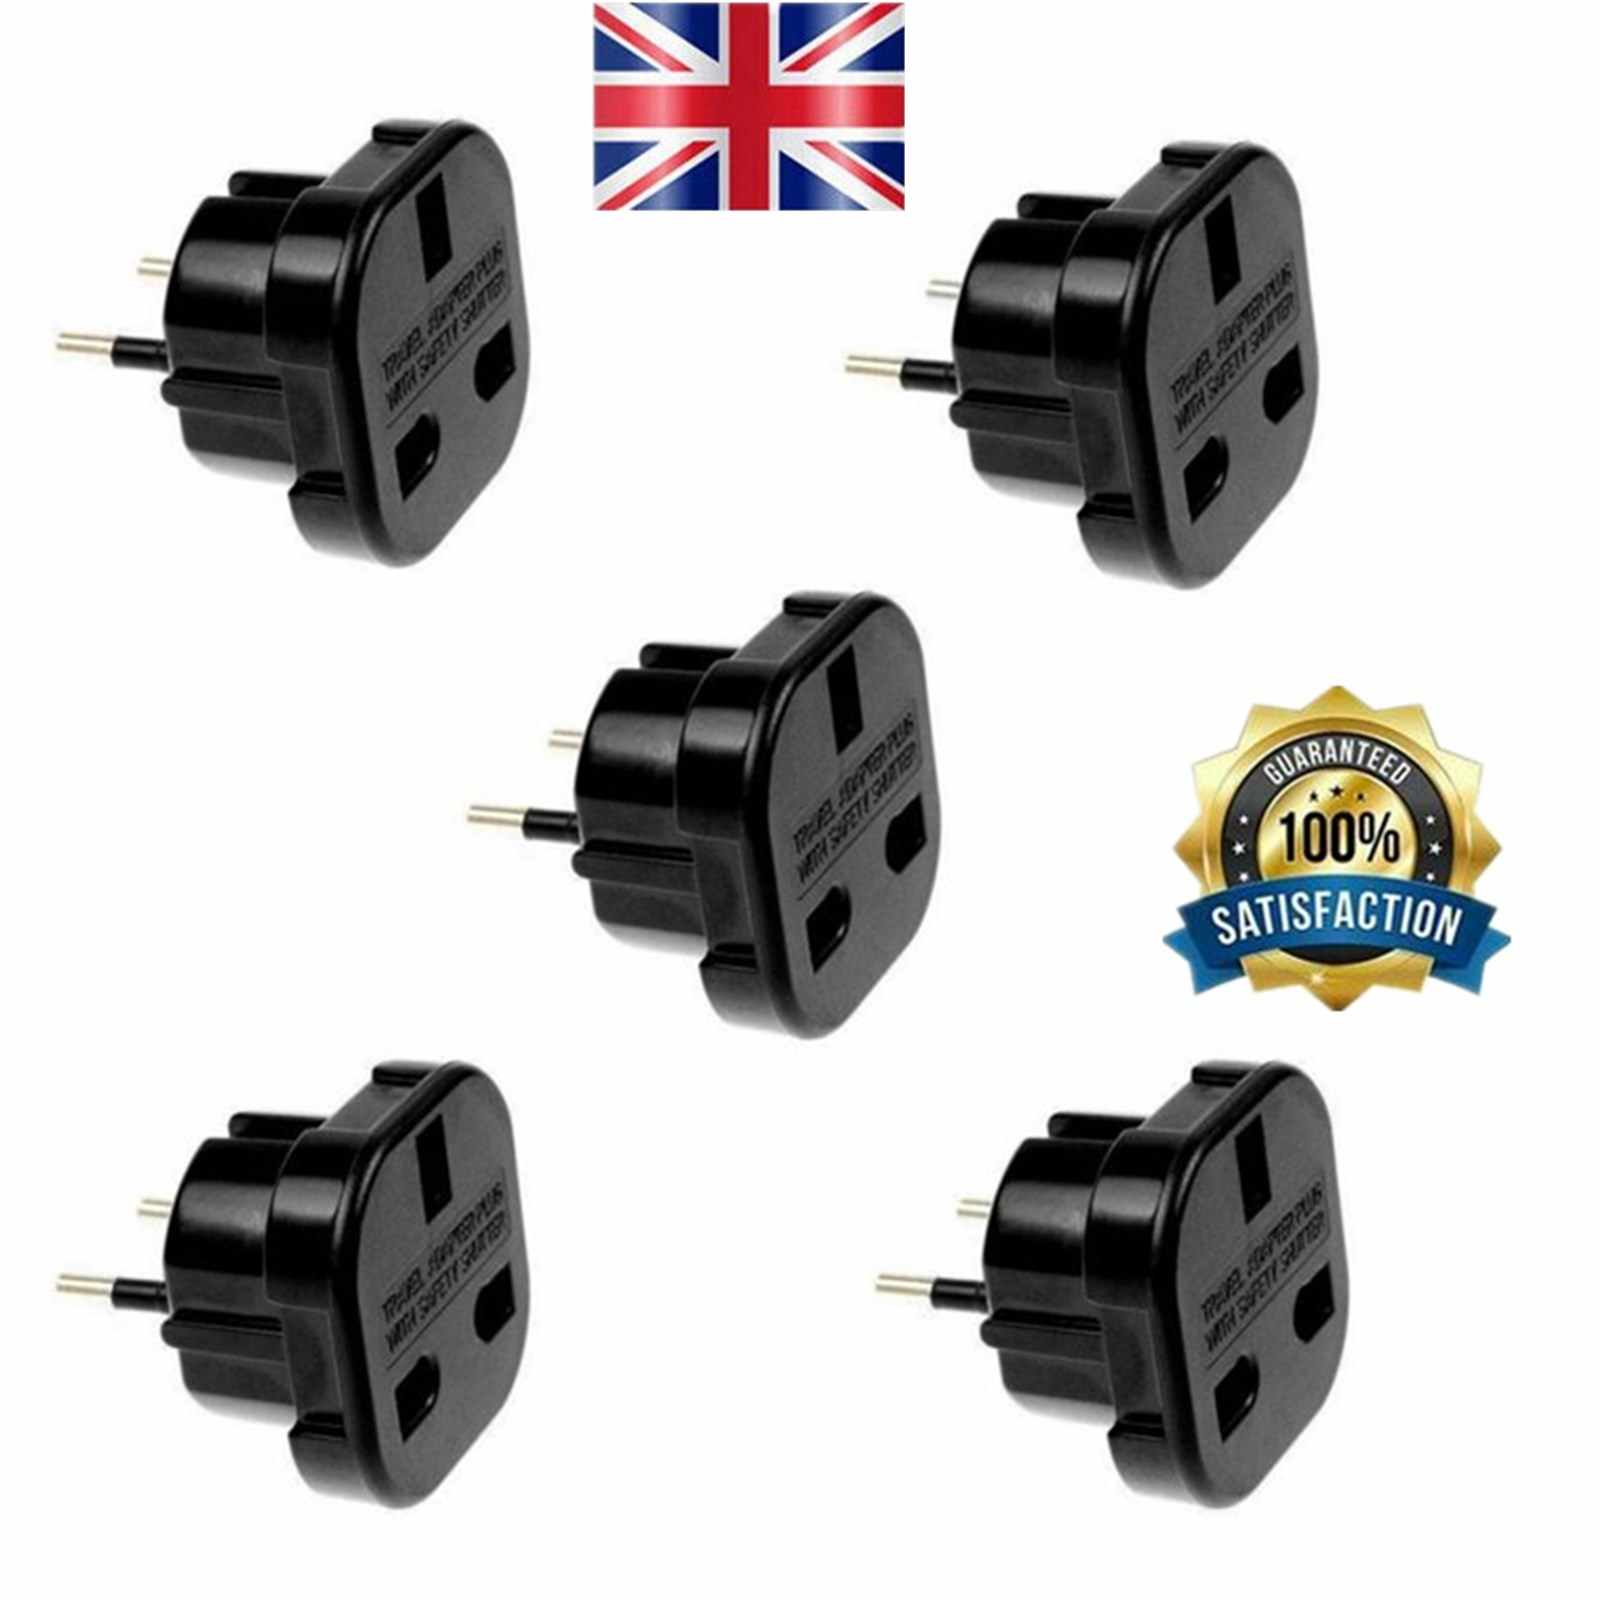 1Pcs Travel UK To EU Adapter Power Plug Converter 3 To 2 Pin Converter With Safety Shutter For Any European Destination